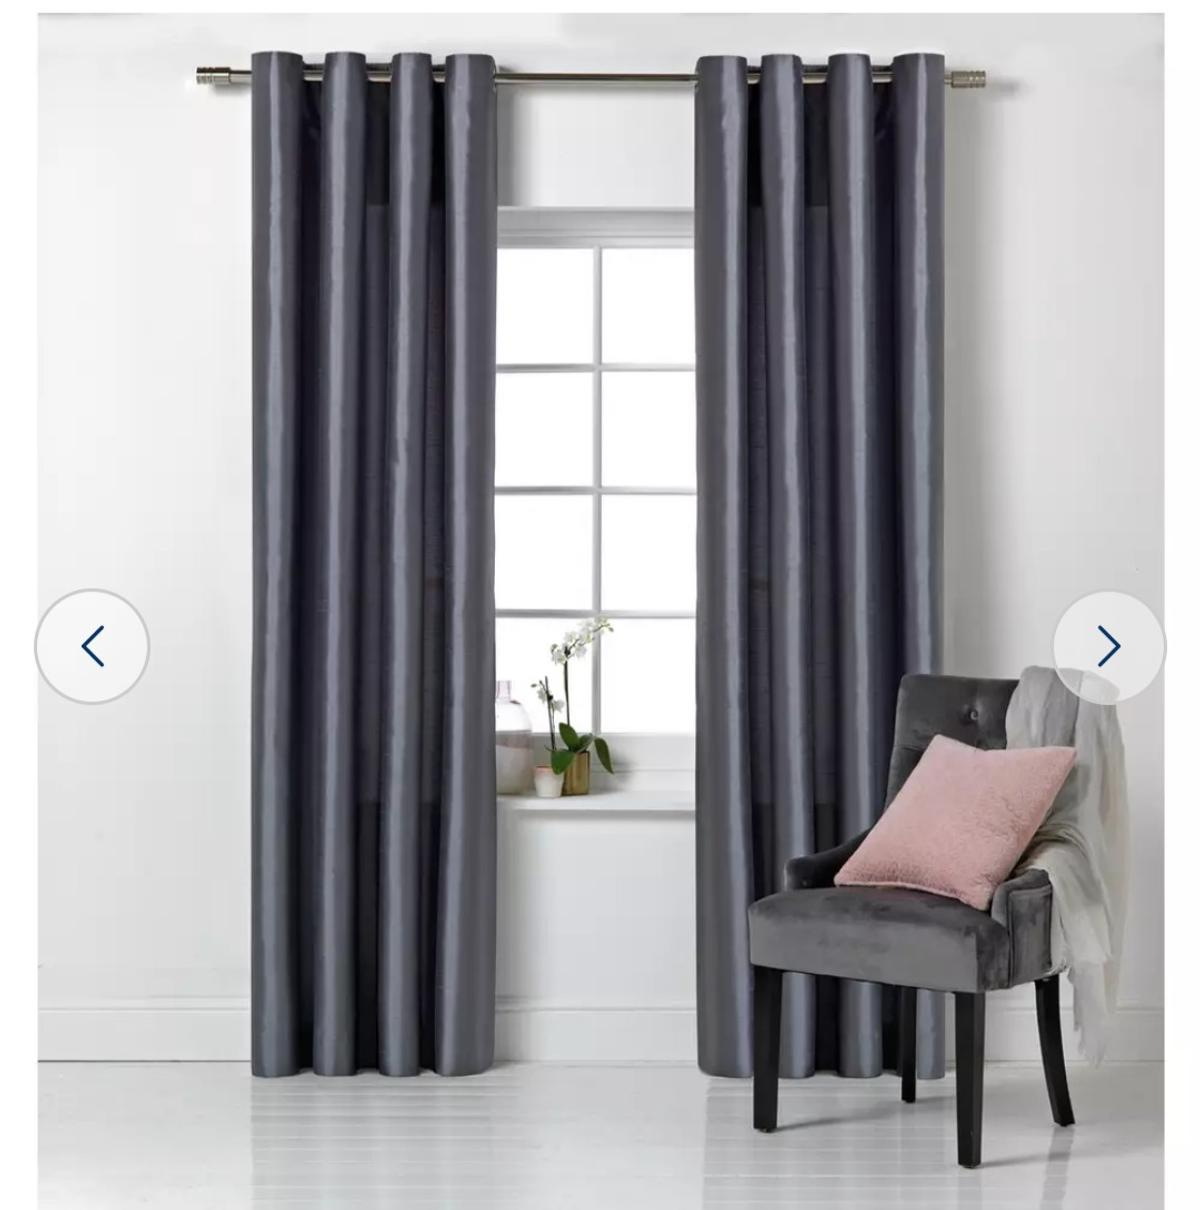 Faux silk charcoal grey fully eyelet lined curtains. W 117cm x L137cm. In brand new condition, all washed and clean ready to go. No marks or anything. Need gone ASAP as I am moving.